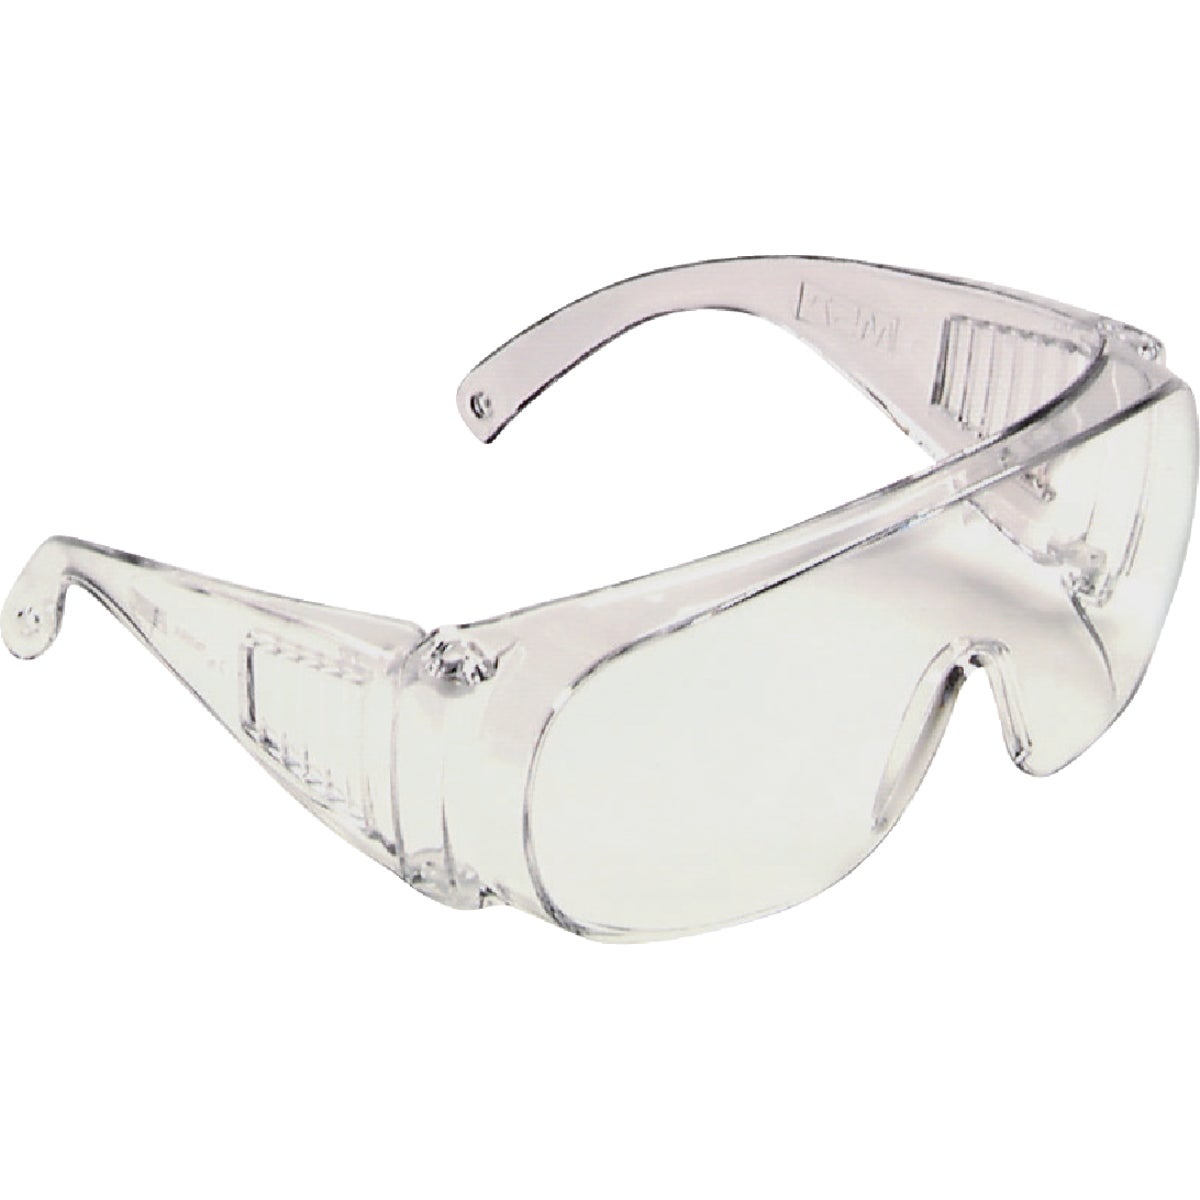 MSA Safety/InCom CLEAR SAFETY GLASSES 817691